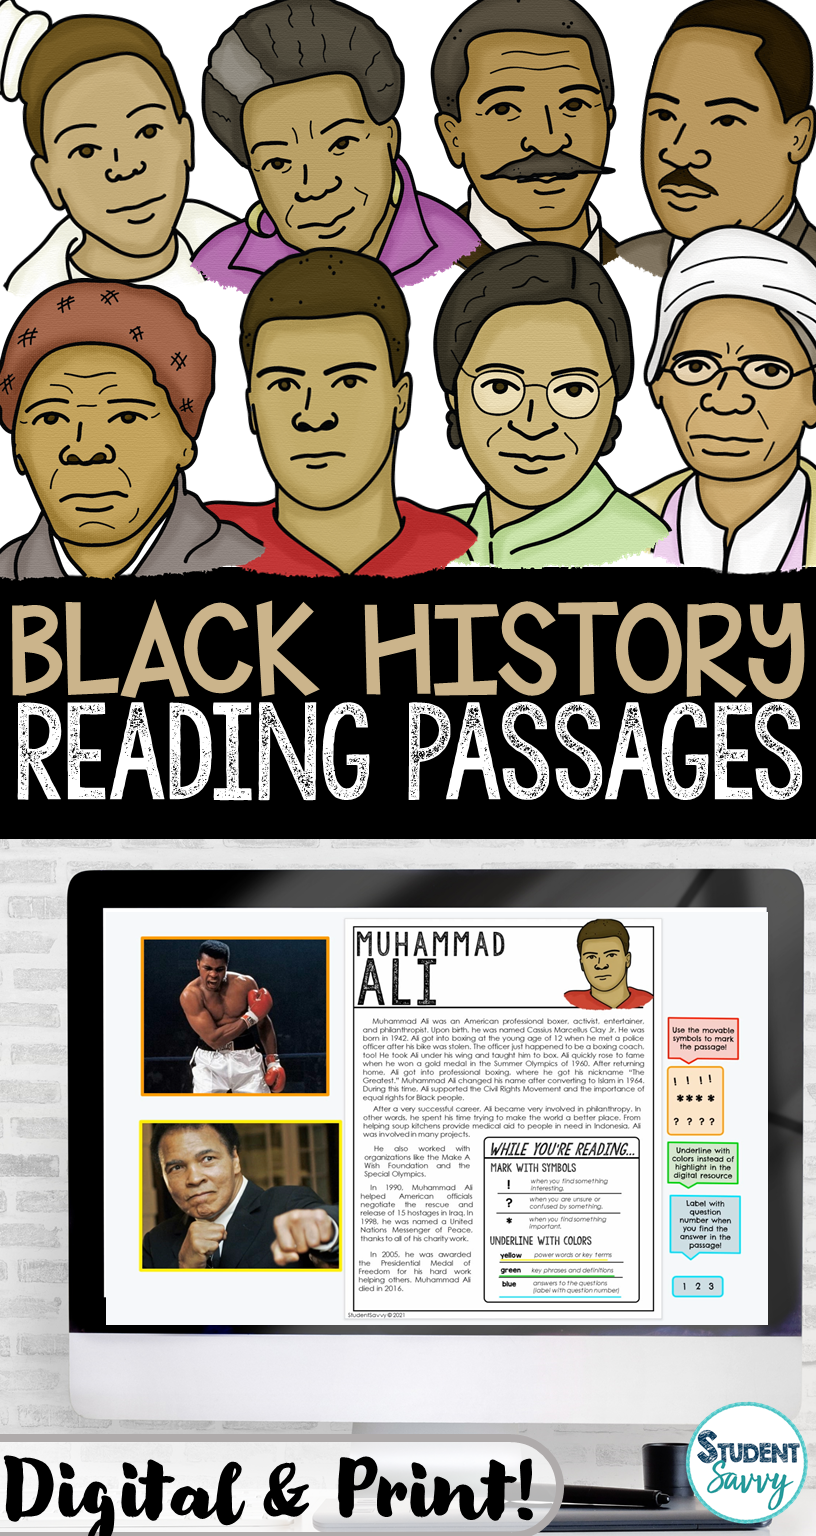 Black History Month Reading Passages for Upper Elementary Students